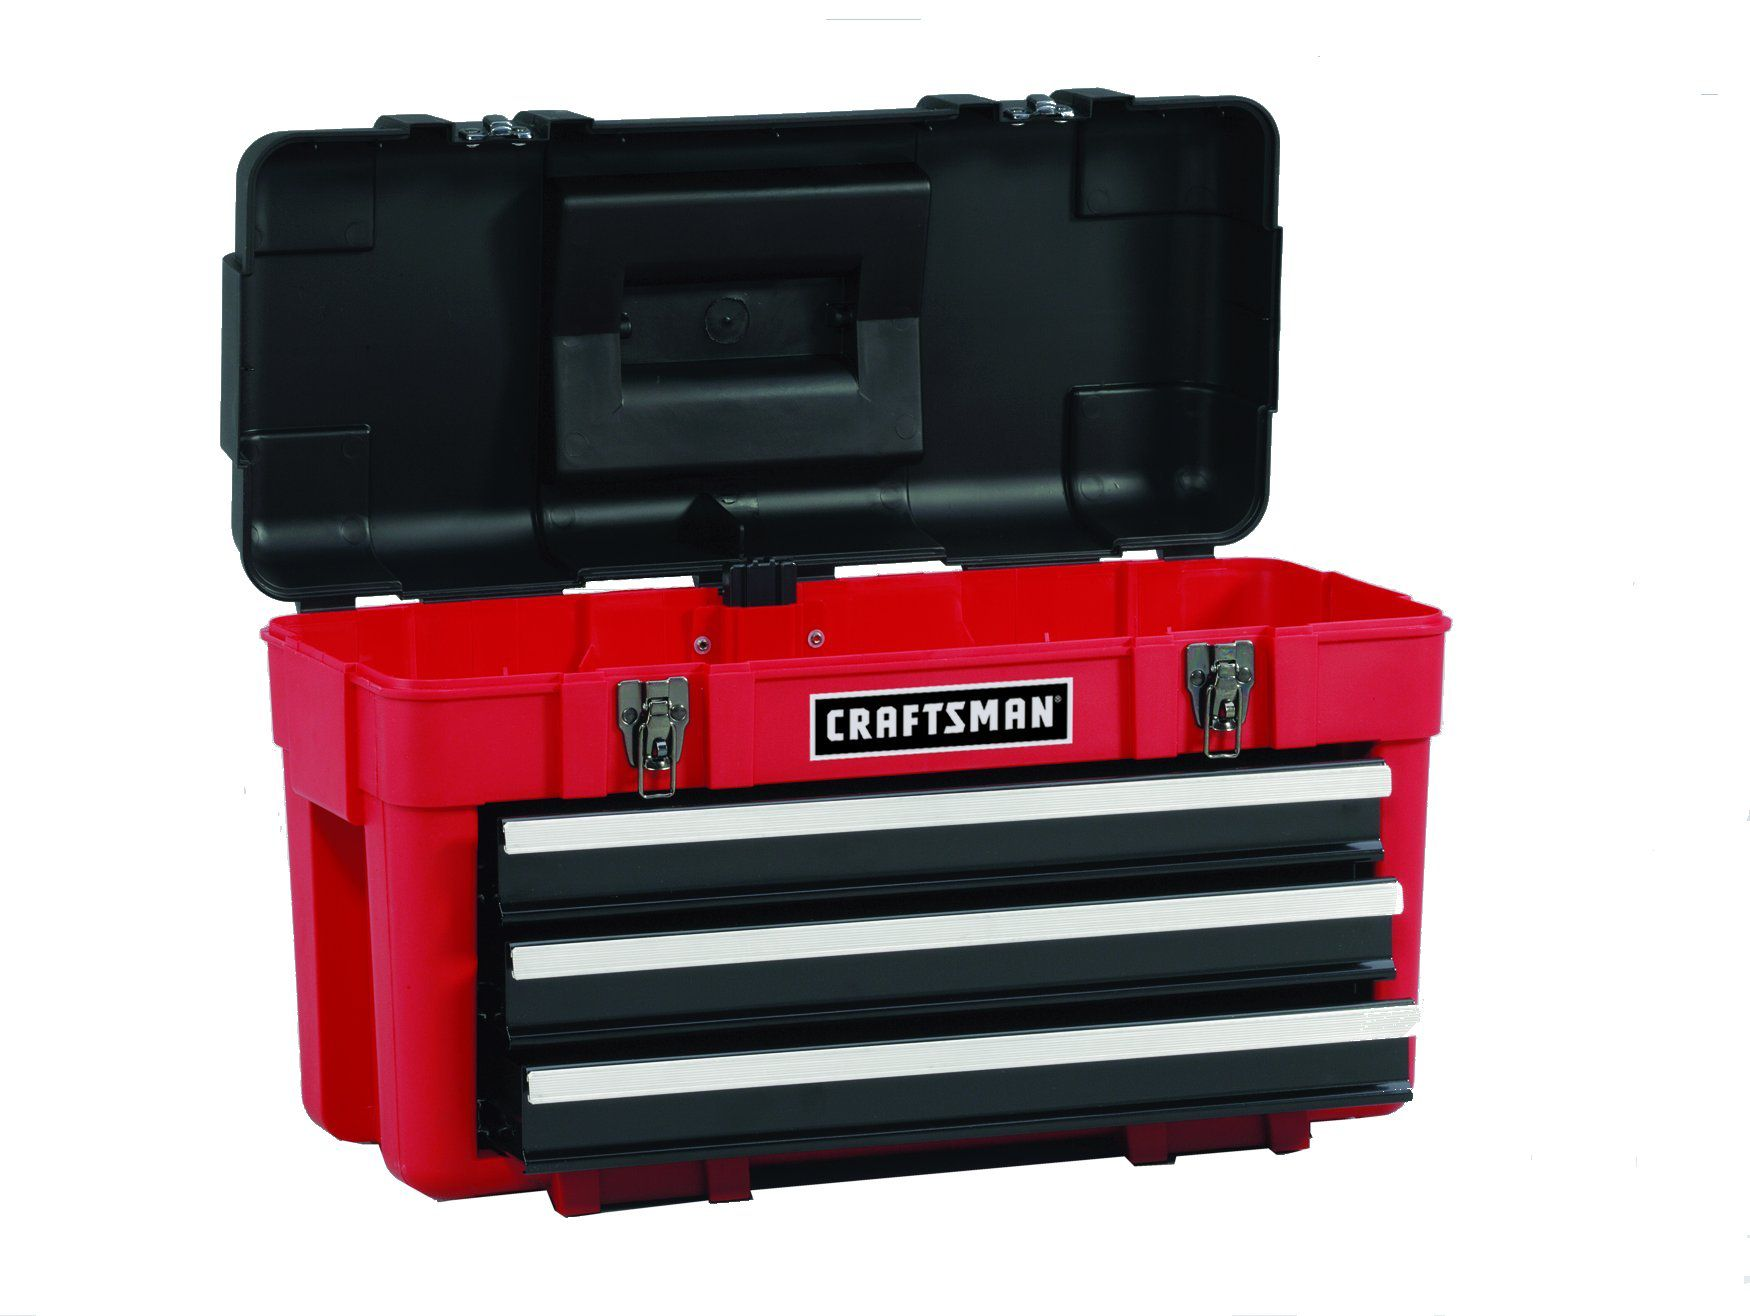 Craftsman 3-Drawer Plastic/Metal Portable Chest - Red/Black